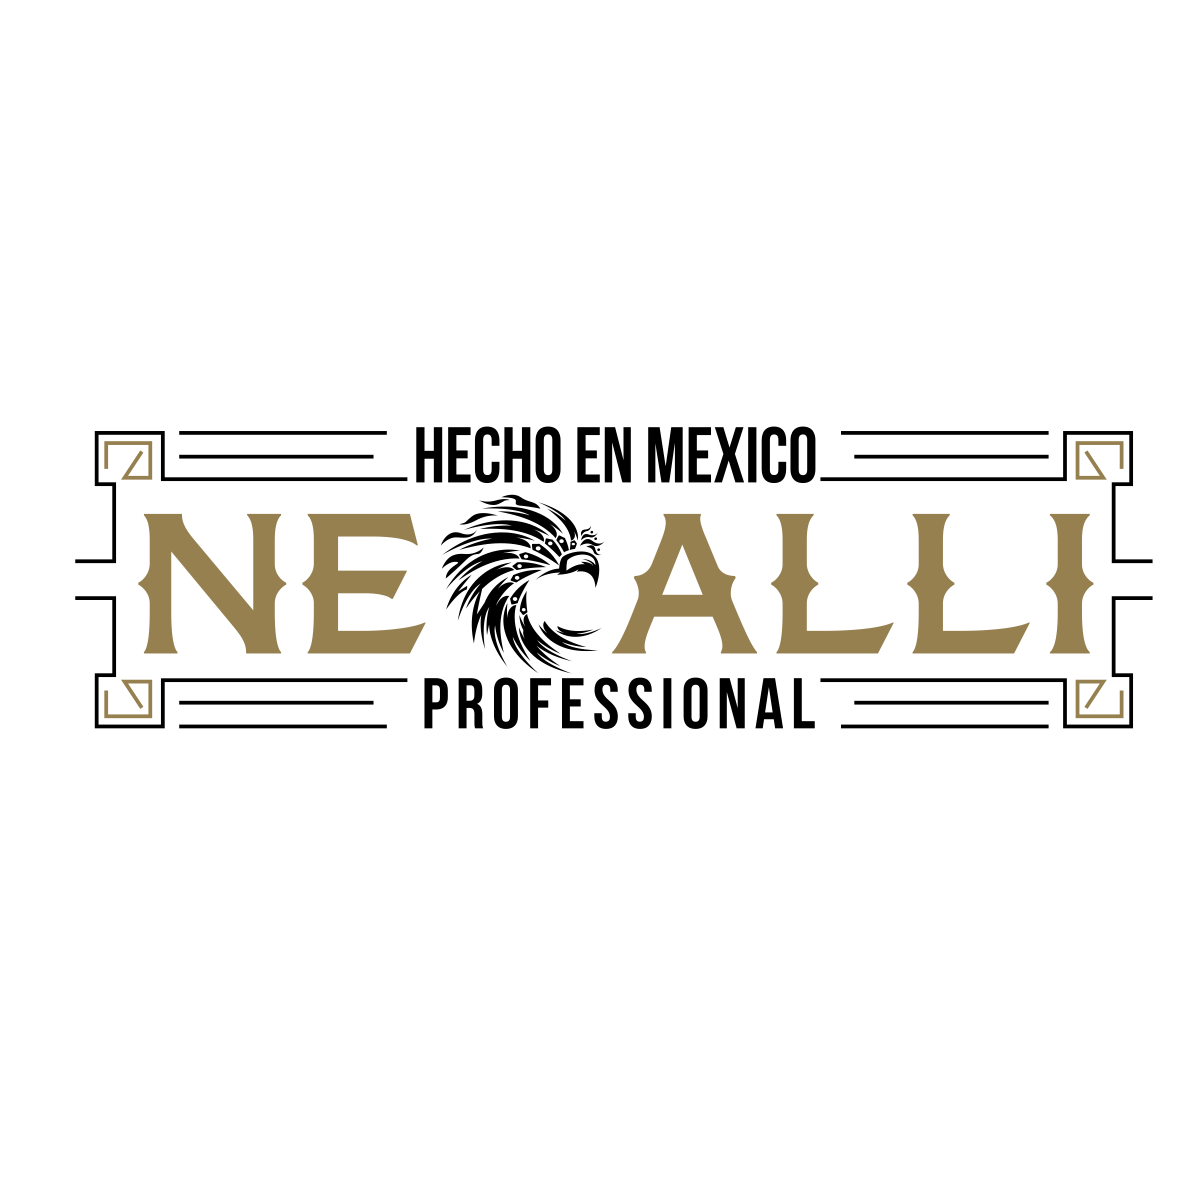 Logo neccali for t-shirt